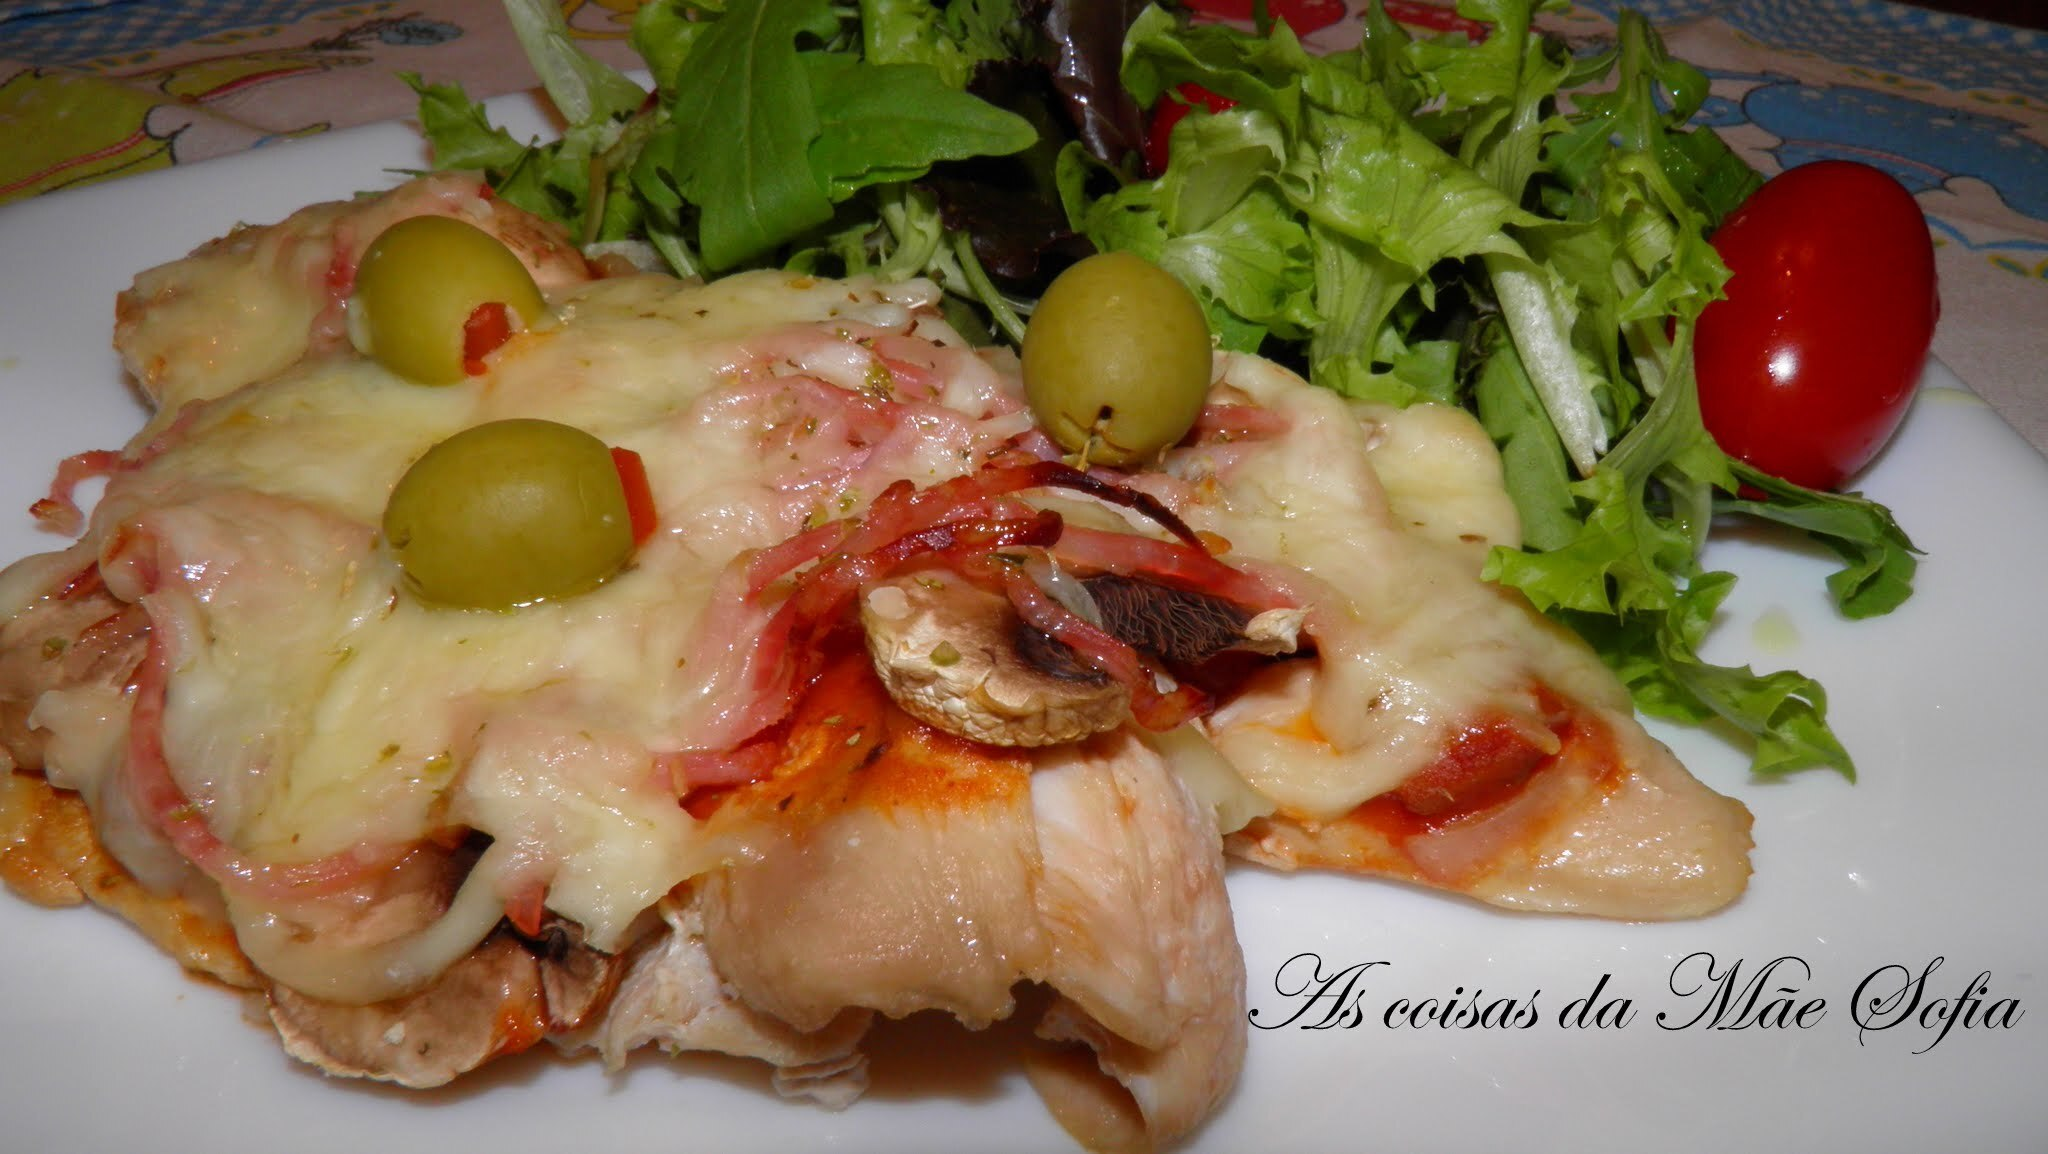 Pizza no frango / Pizza on chicken